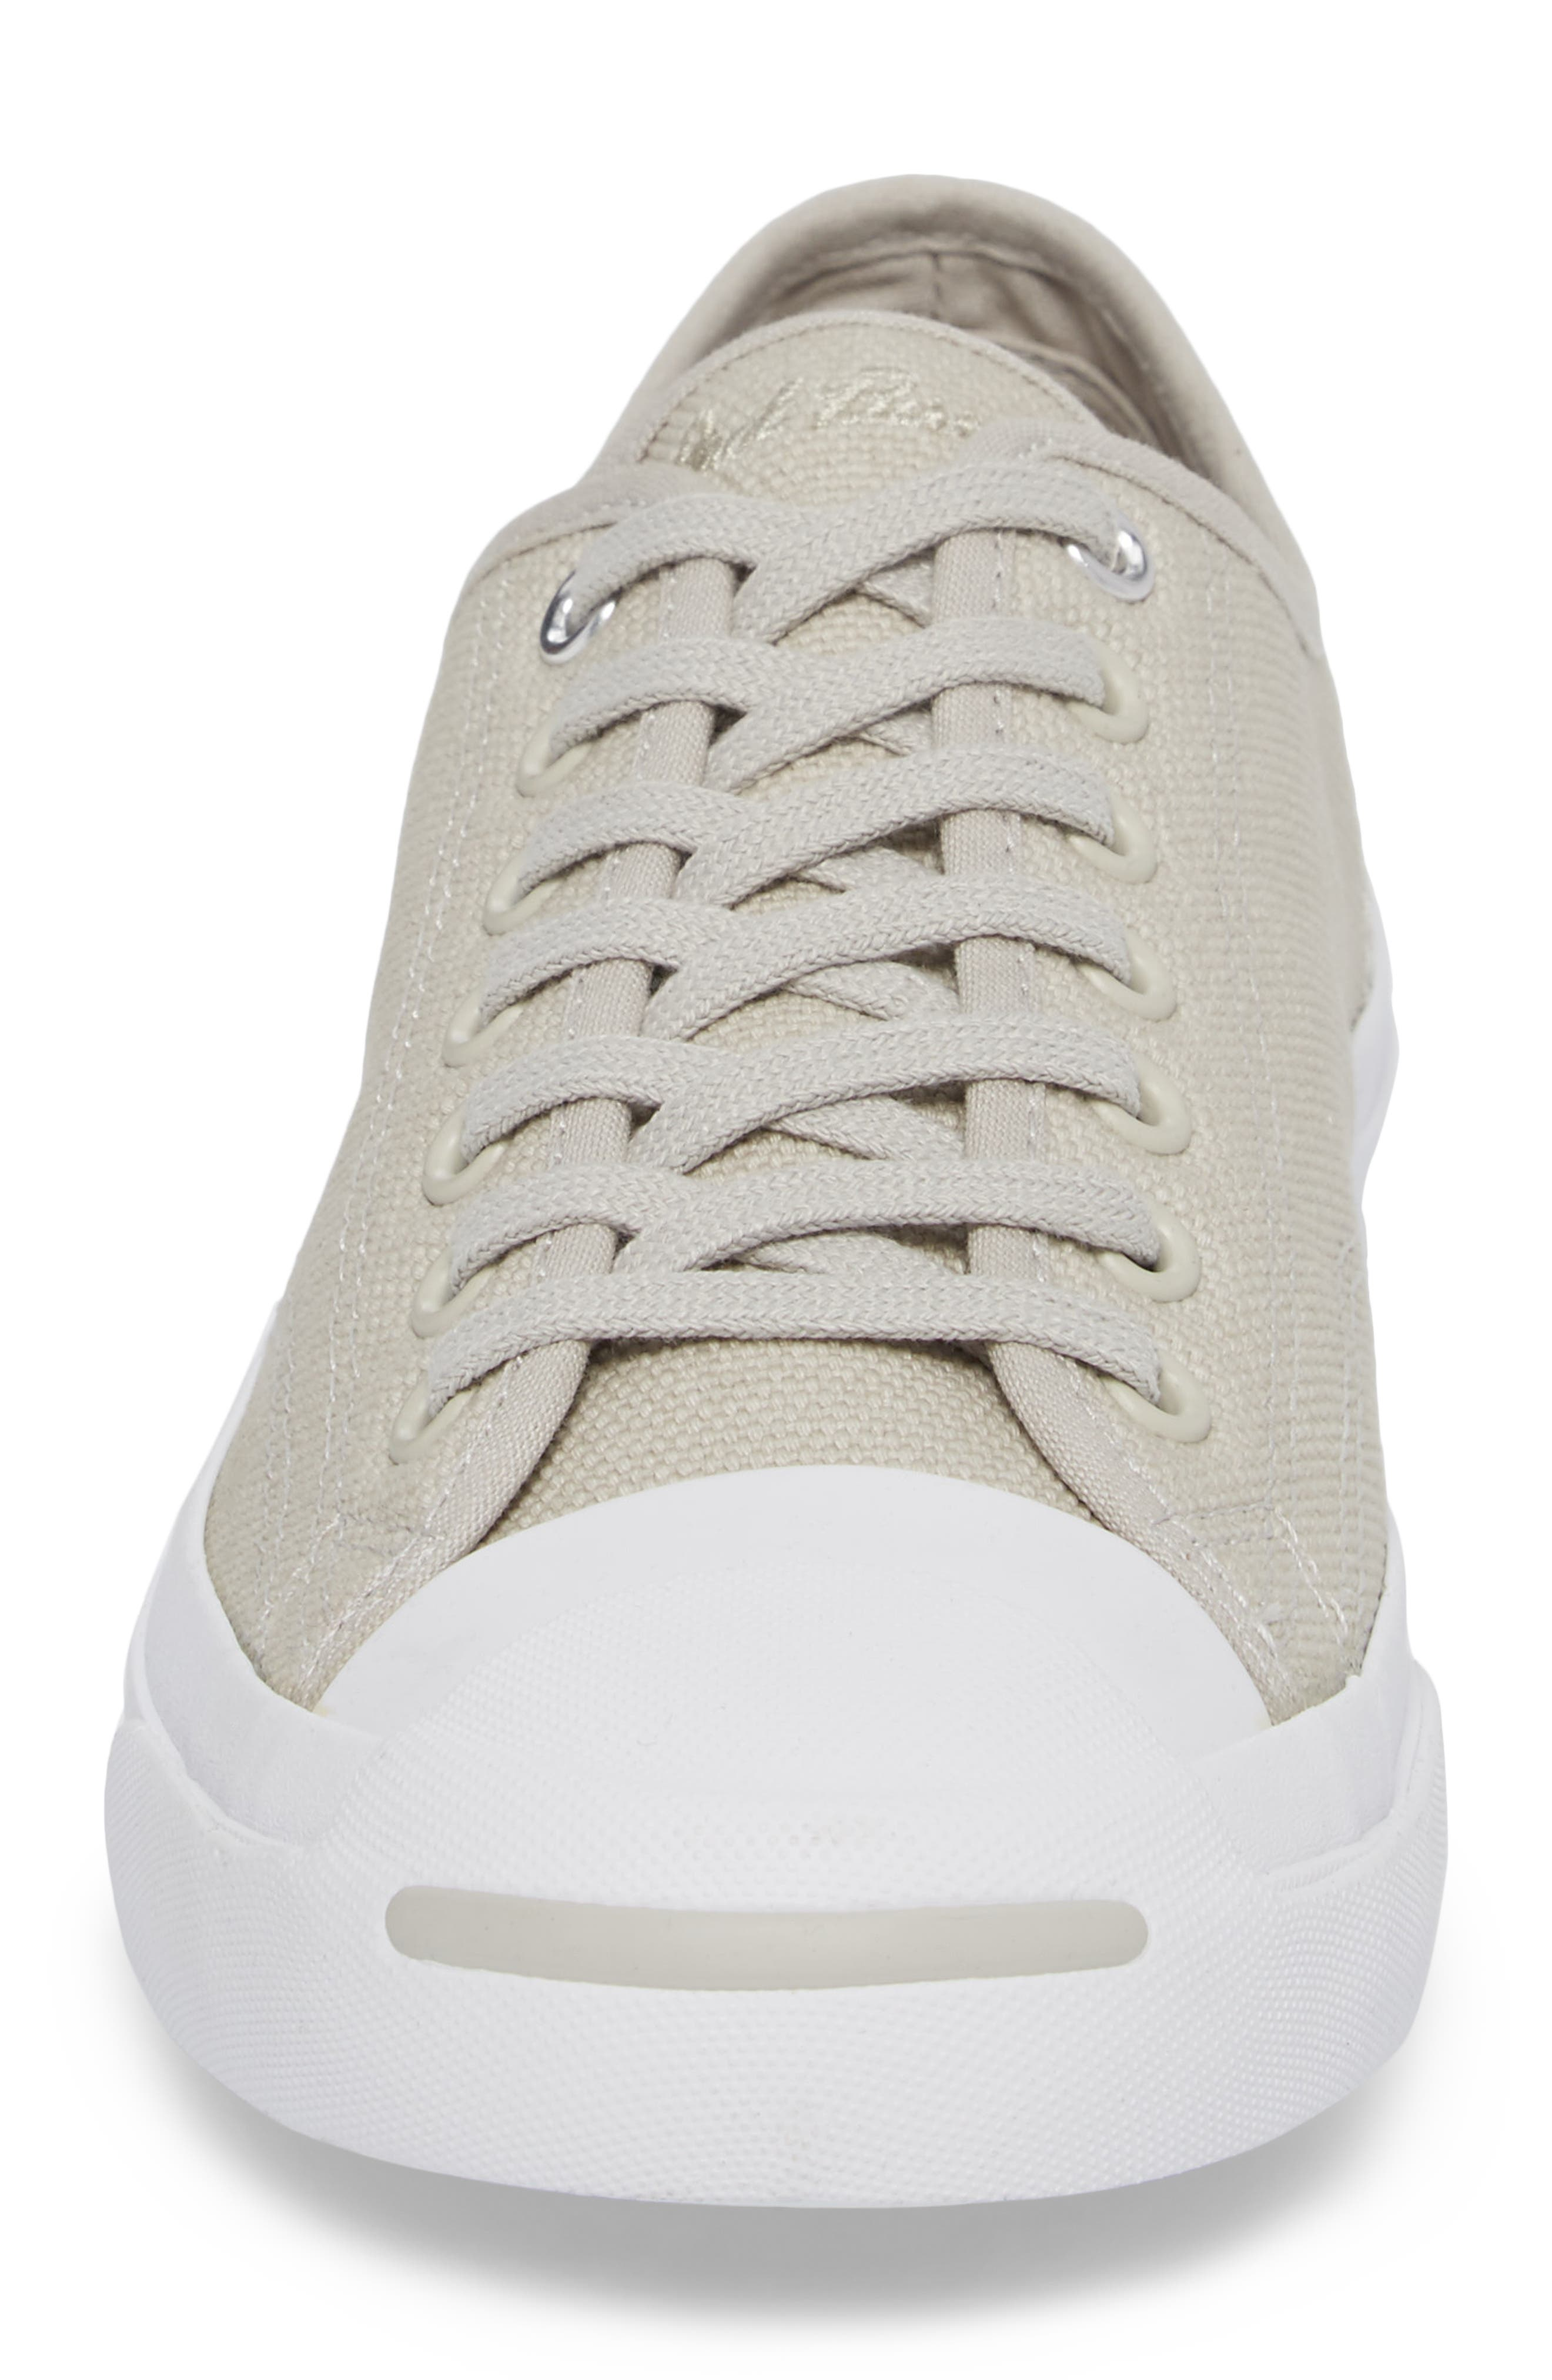 Jack Purcell Sneaker,                             Alternate thumbnail 4, color,                             Pale Grey Canvas